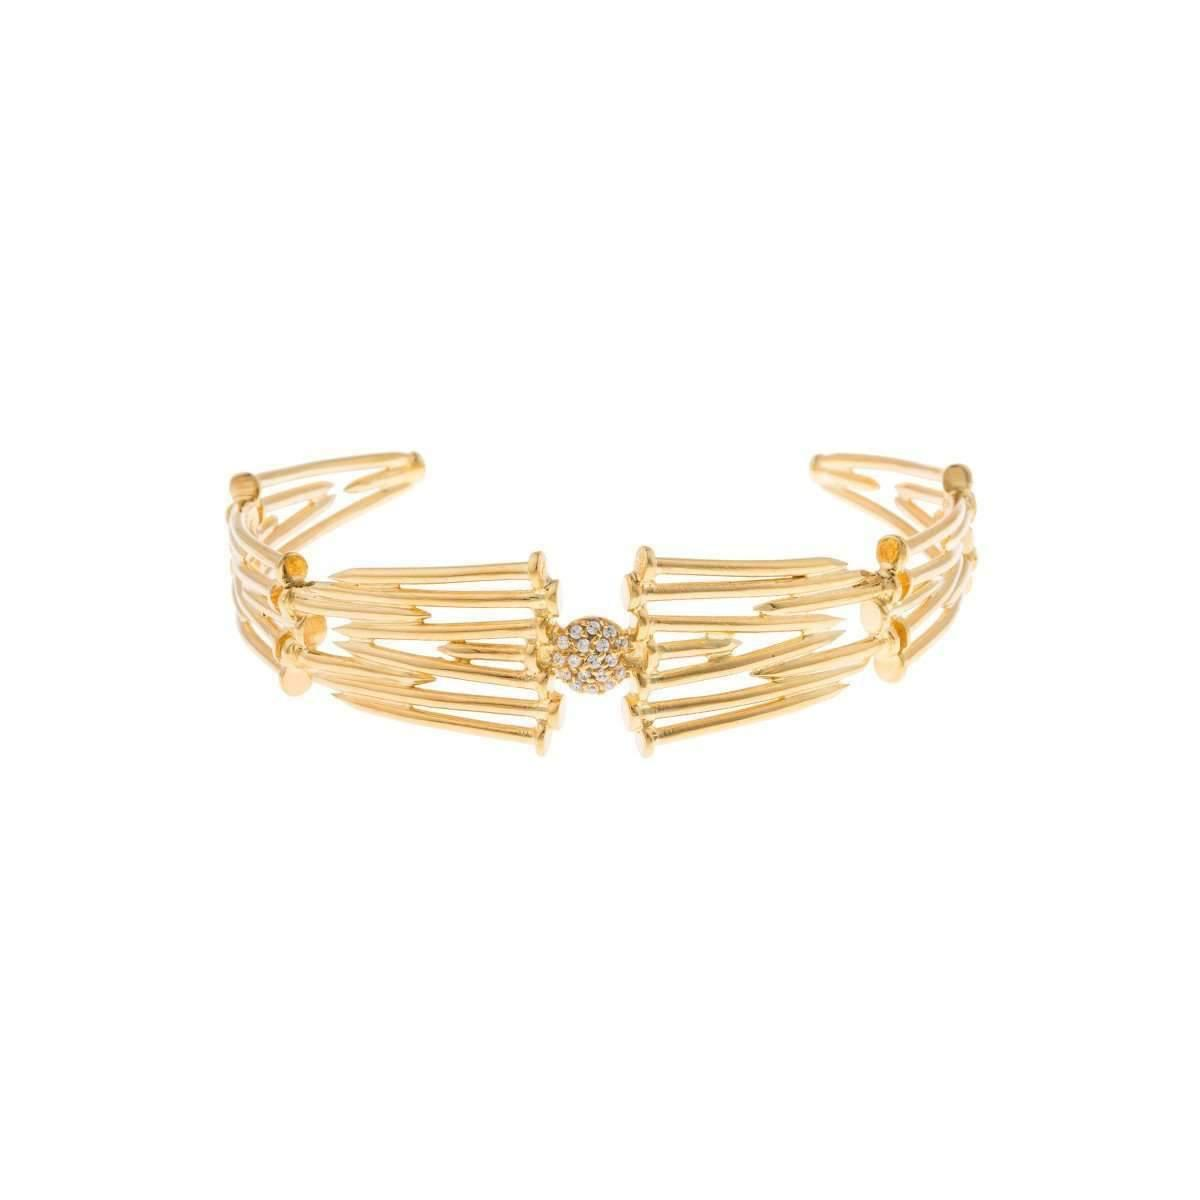 Joanna Laura Constantine Monochrome Statement Cuff Bracelet in Gold-Plated Brass with Yashma and Light Pink coral pQIxpdth2